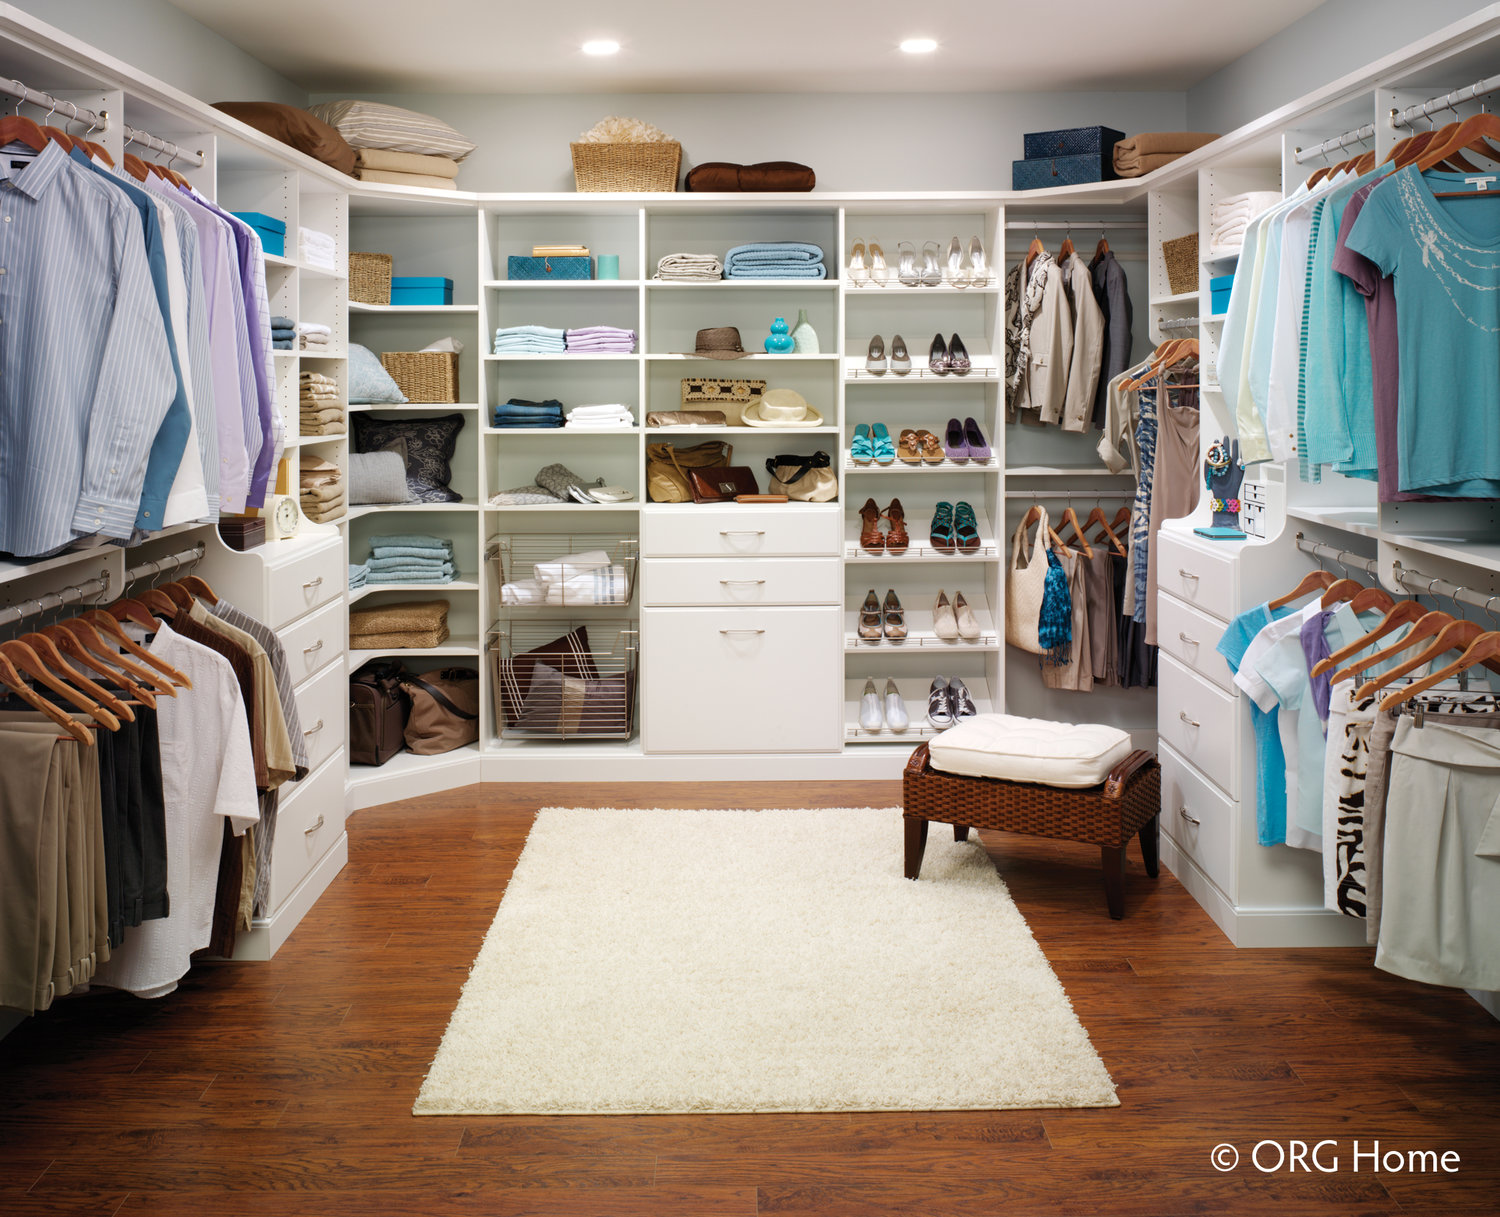 We build custom organizing spaces in Los Angeles and Orange County in ONE  DAY. One Day Organizing Solutions